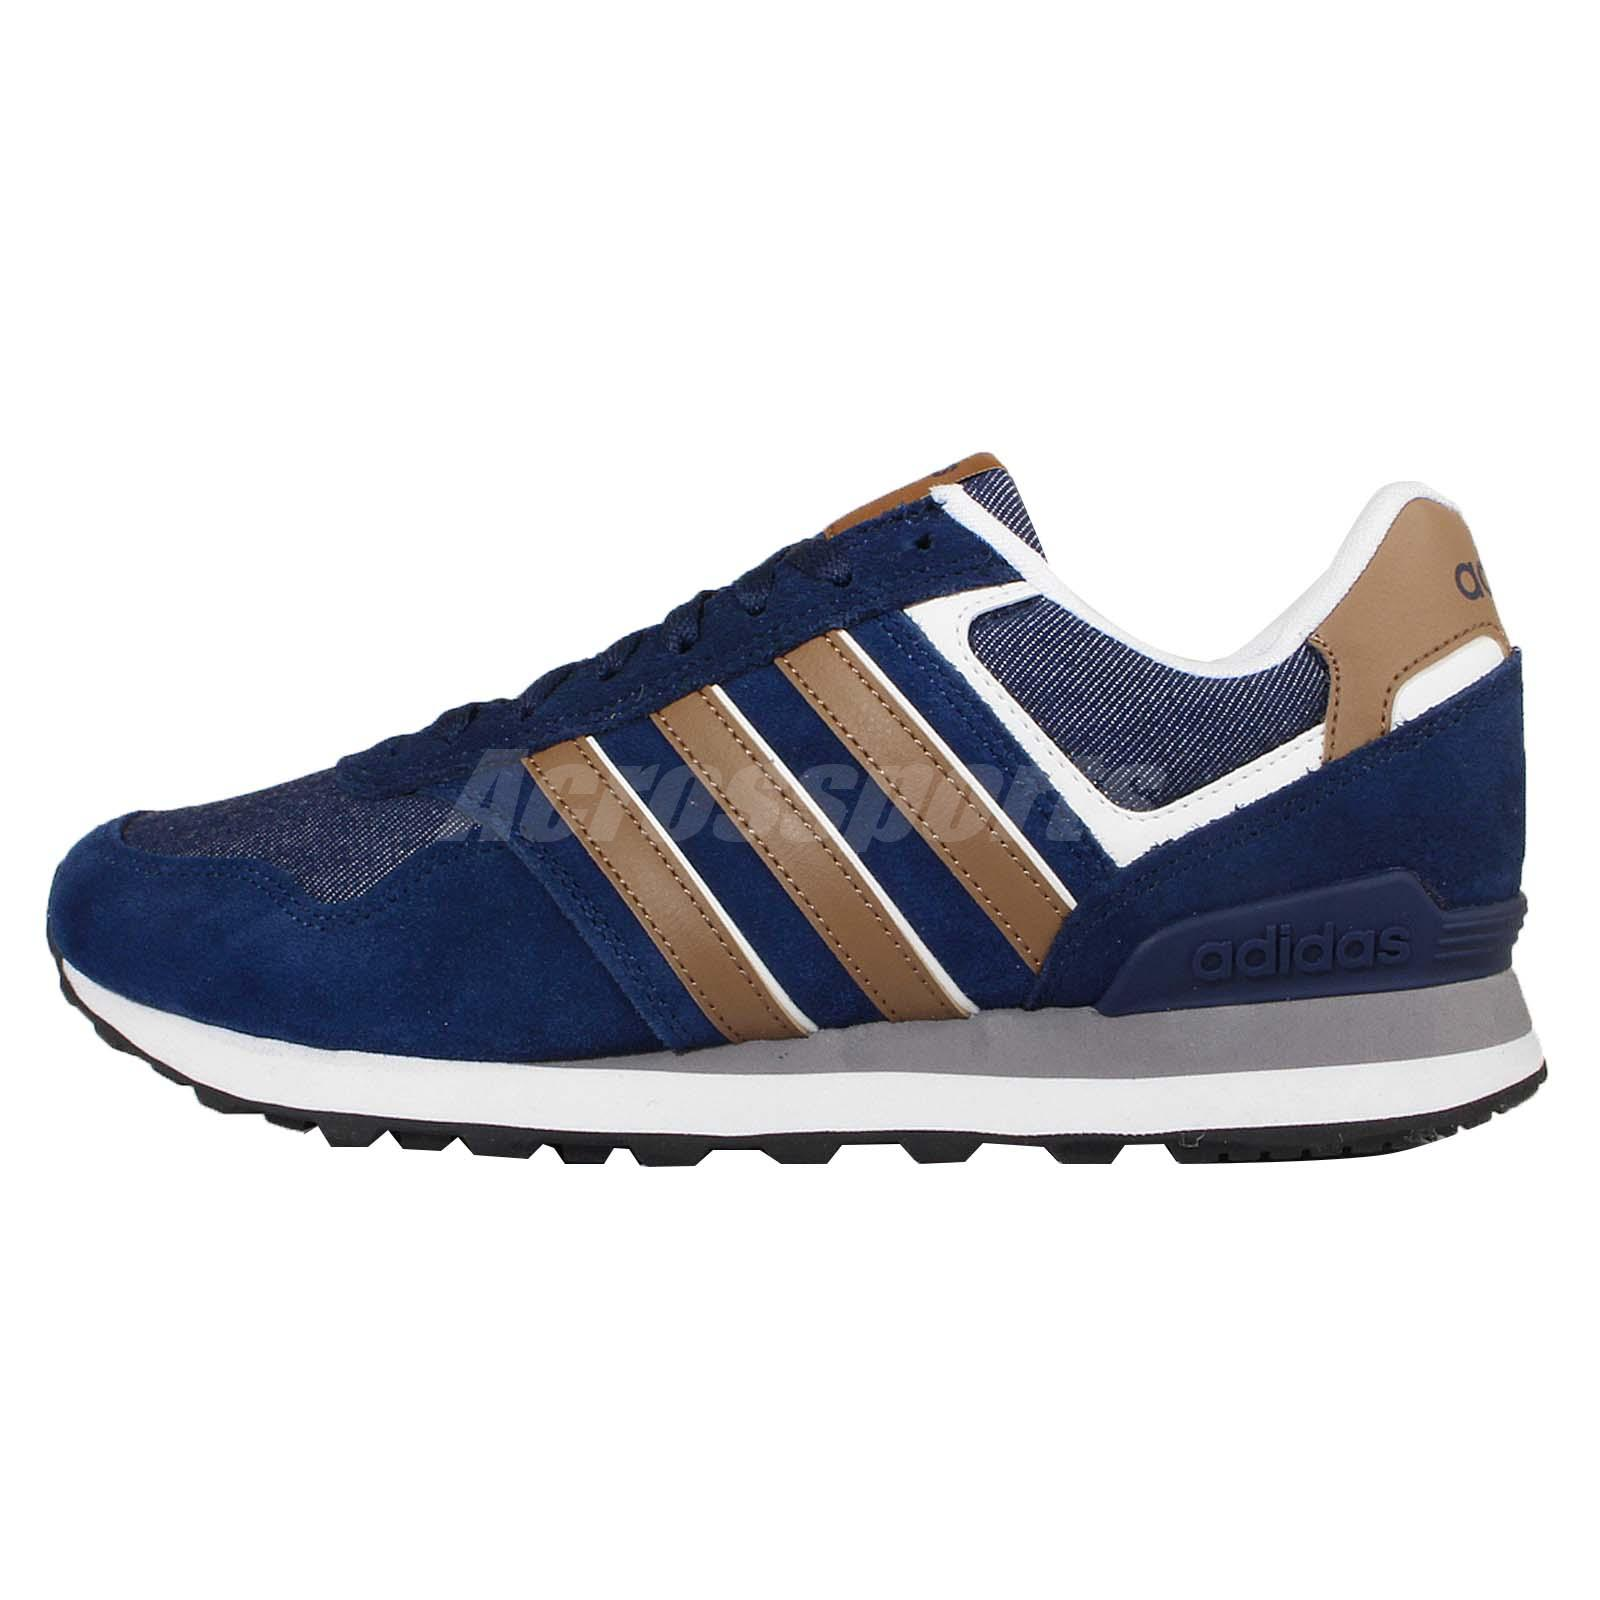 adidas neo label 10k navy brown white mens casual shoes. Black Bedroom Furniture Sets. Home Design Ideas